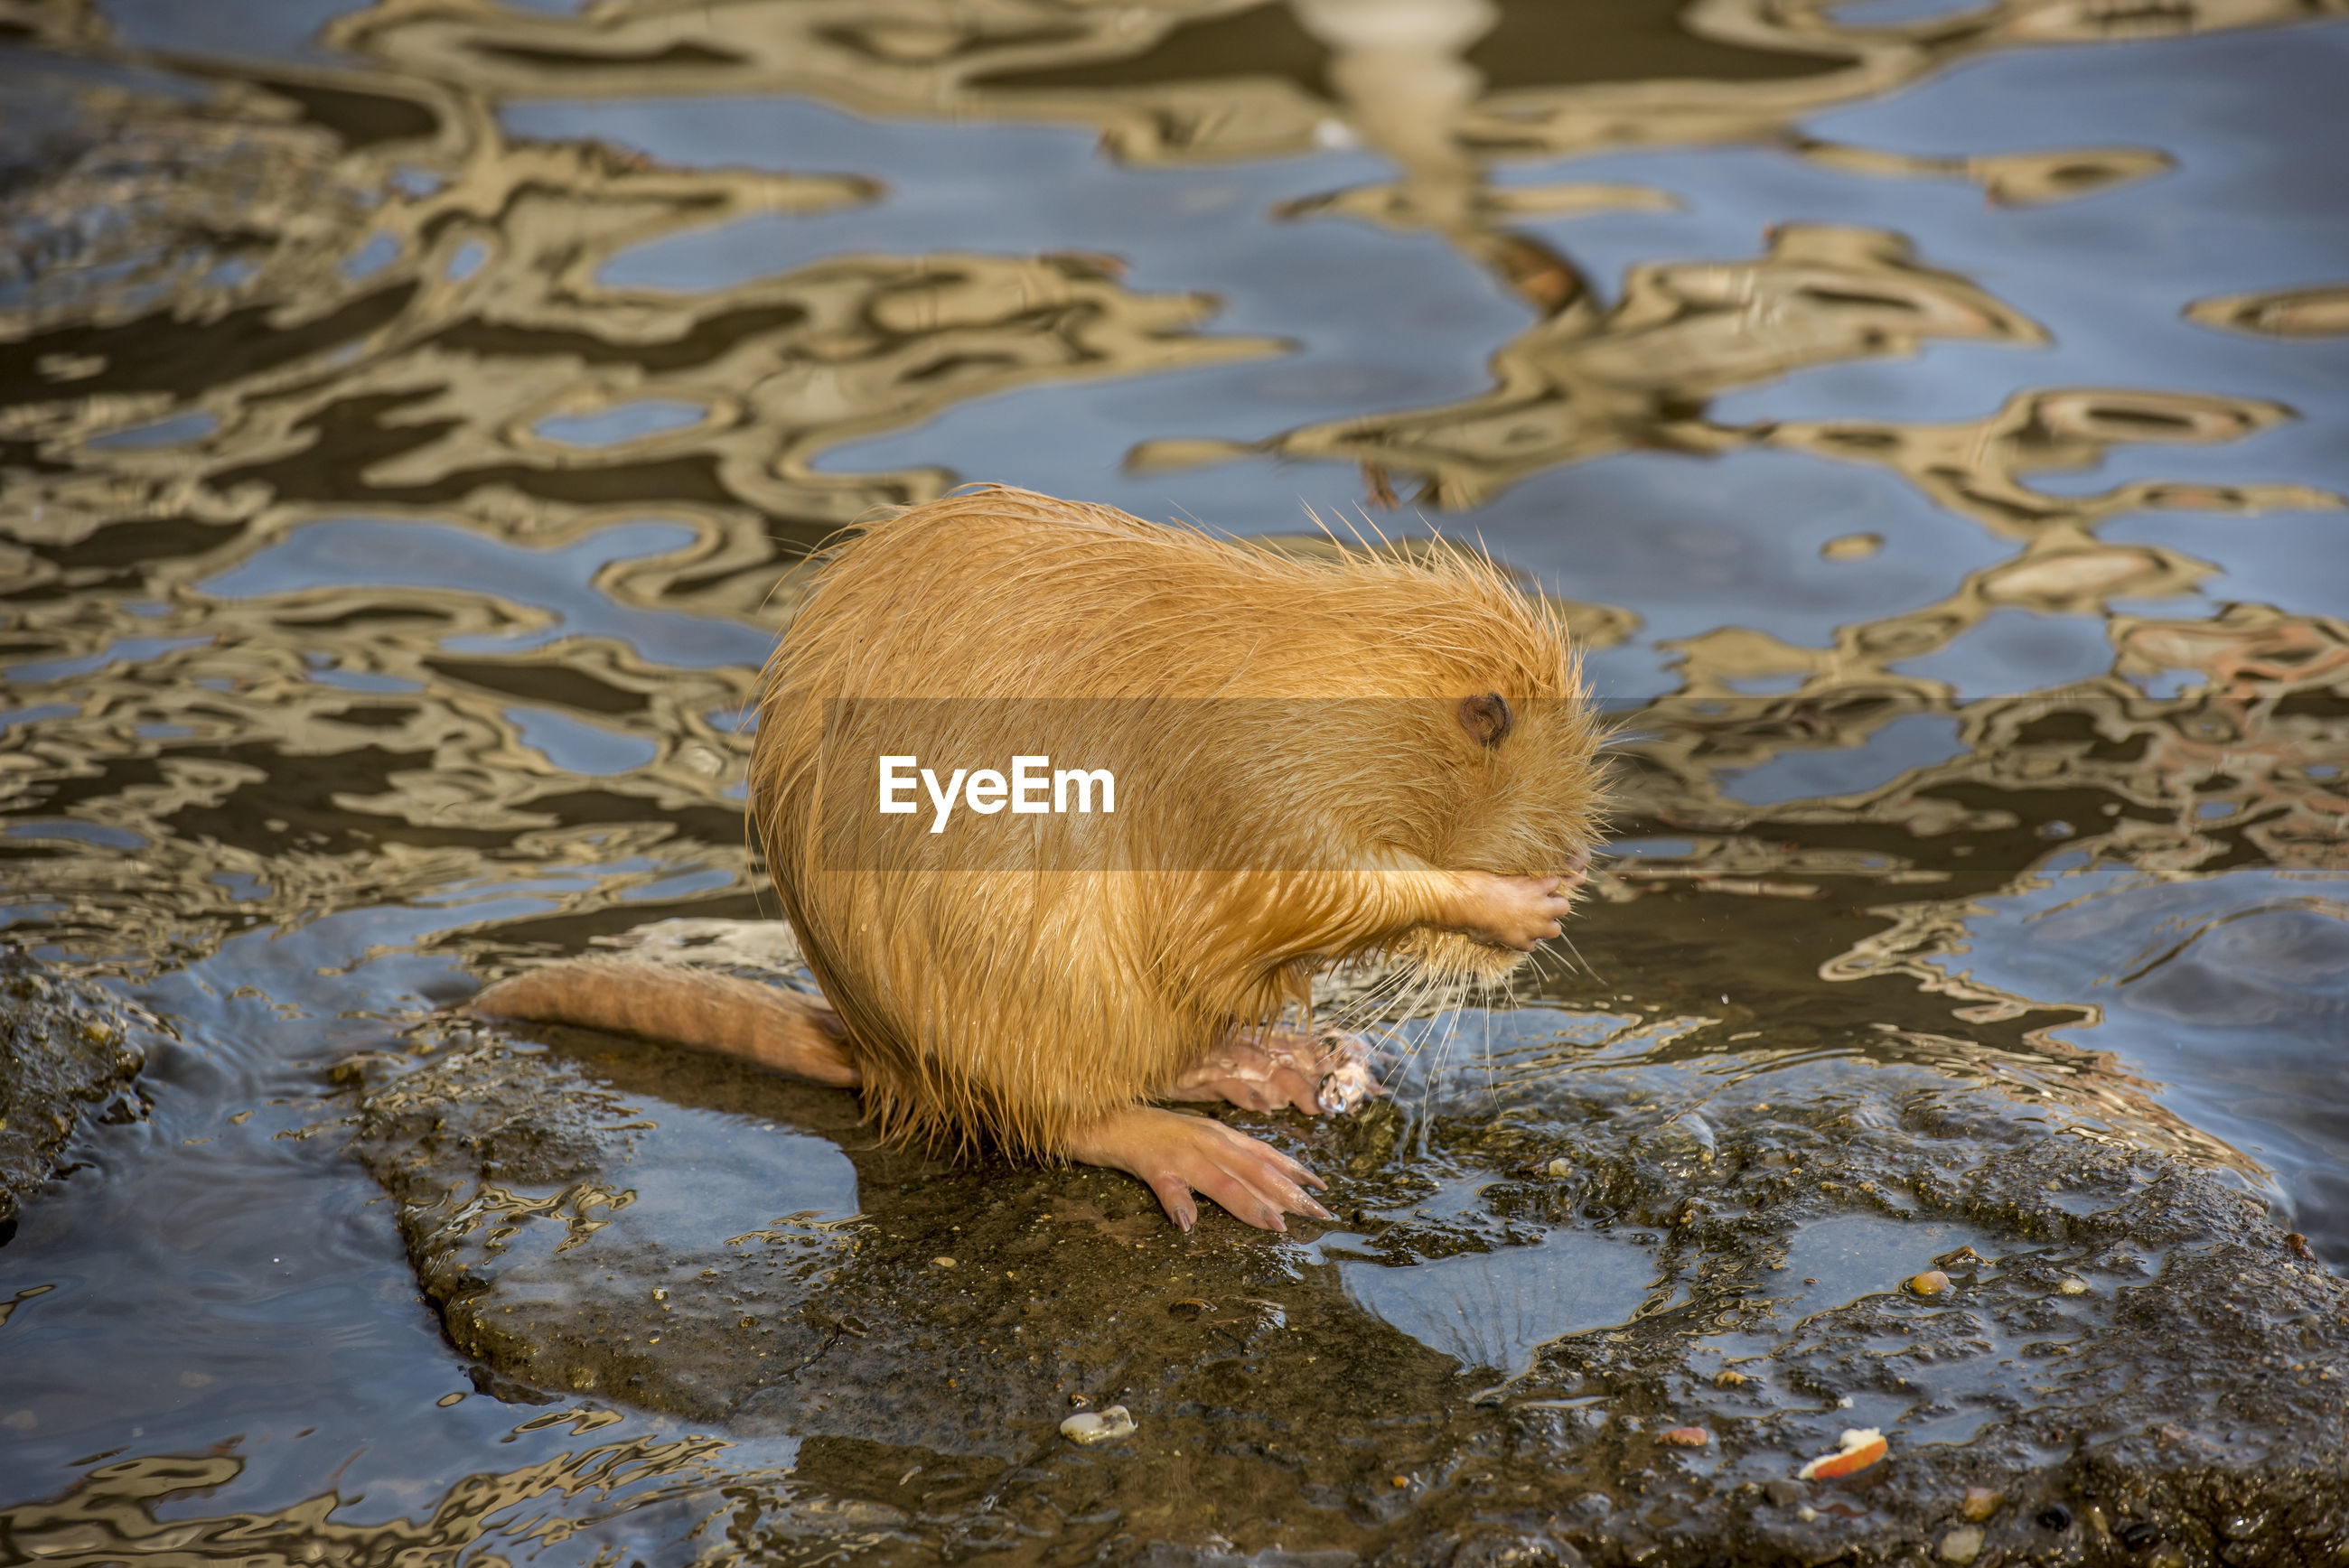 Rat grooming in a shallow river